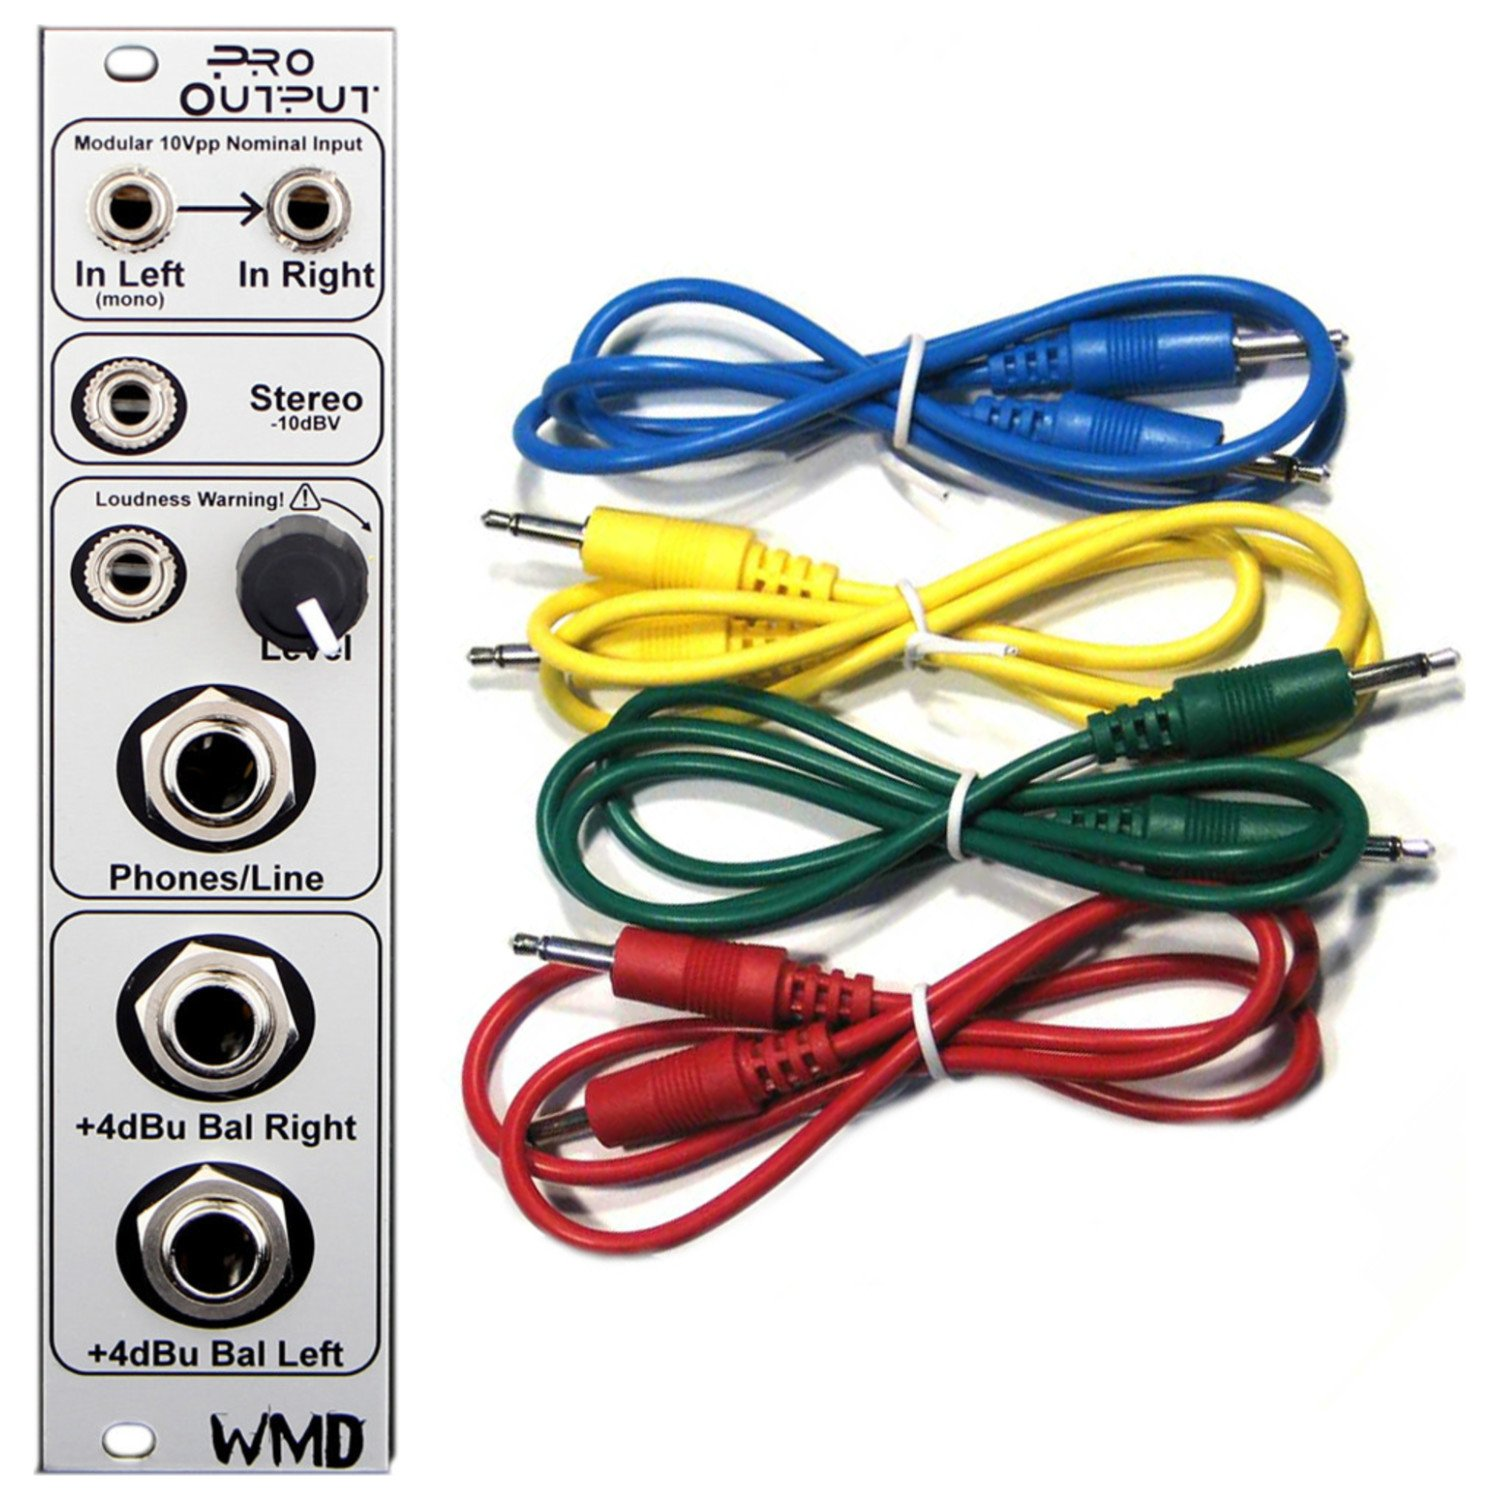 WMD Pro Output Eurorack Synth Module w/ 4 Cables